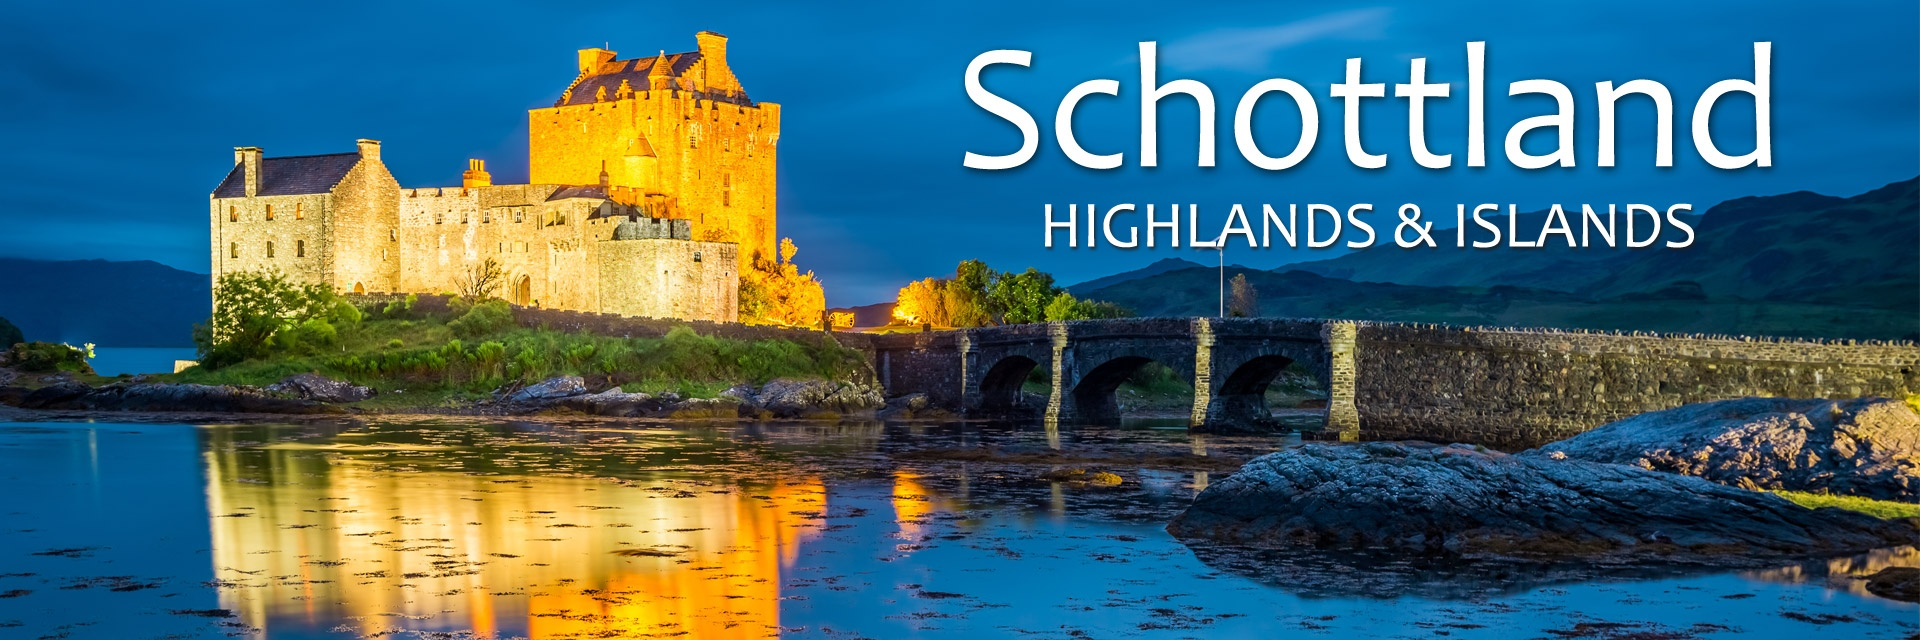 Schottland – Highlands & Islands